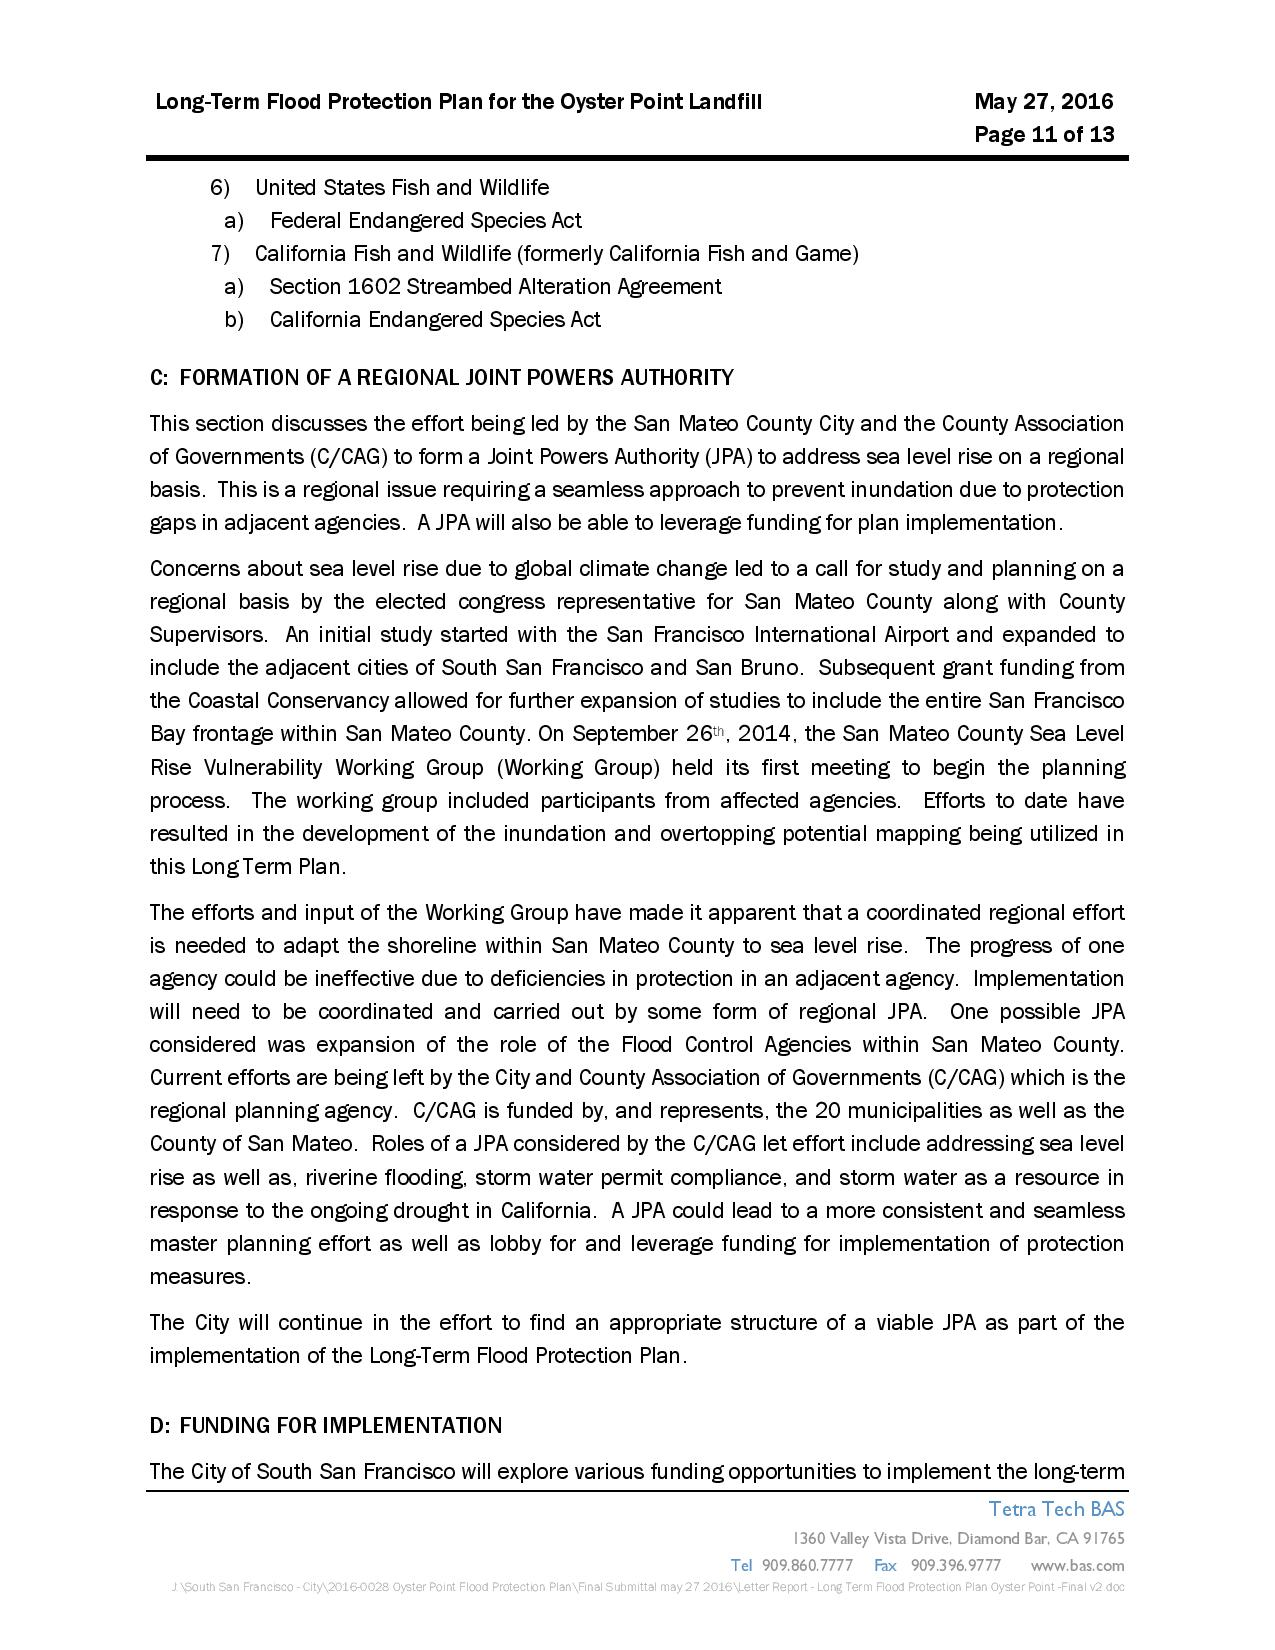 City of SSF Oyster Pt. Landfill Long-Term Flood Protection Letter & Plan-2-page-013